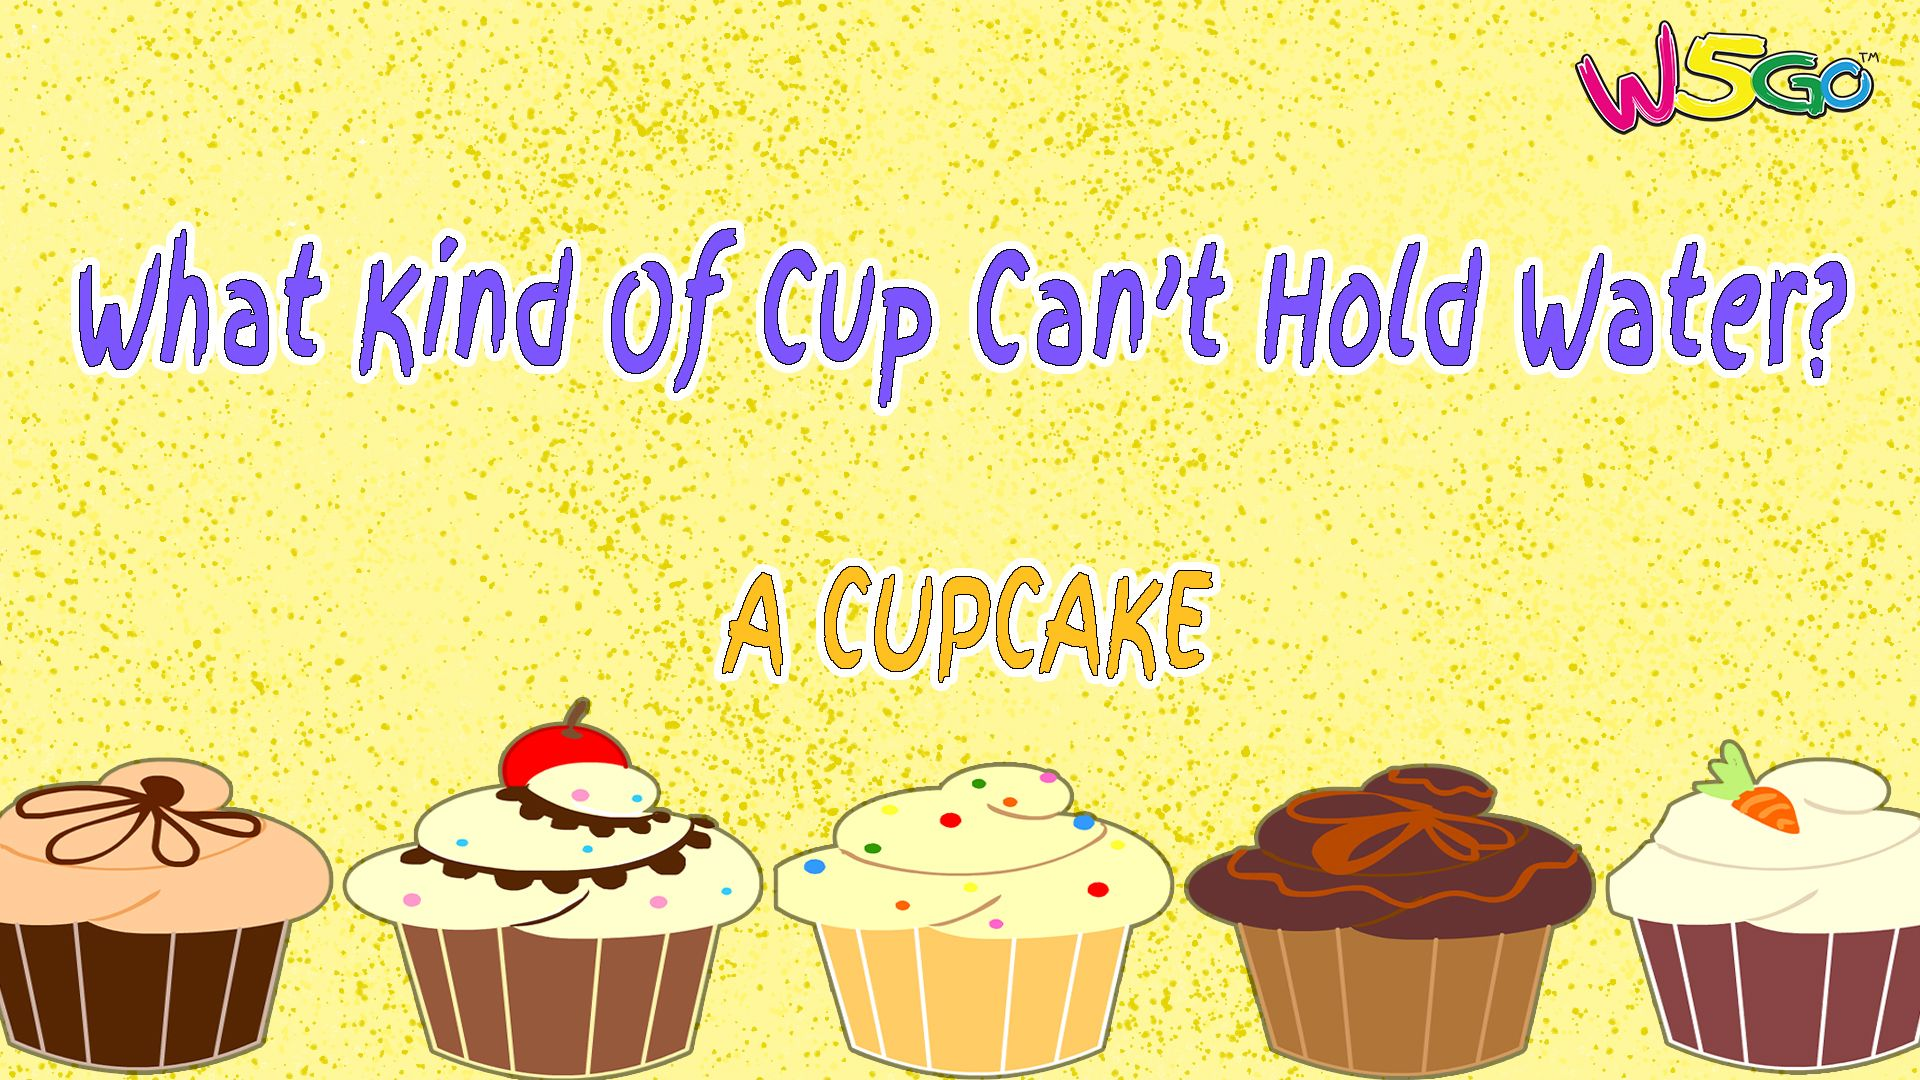 Can you solve this riddle? What kind of cup can't hold